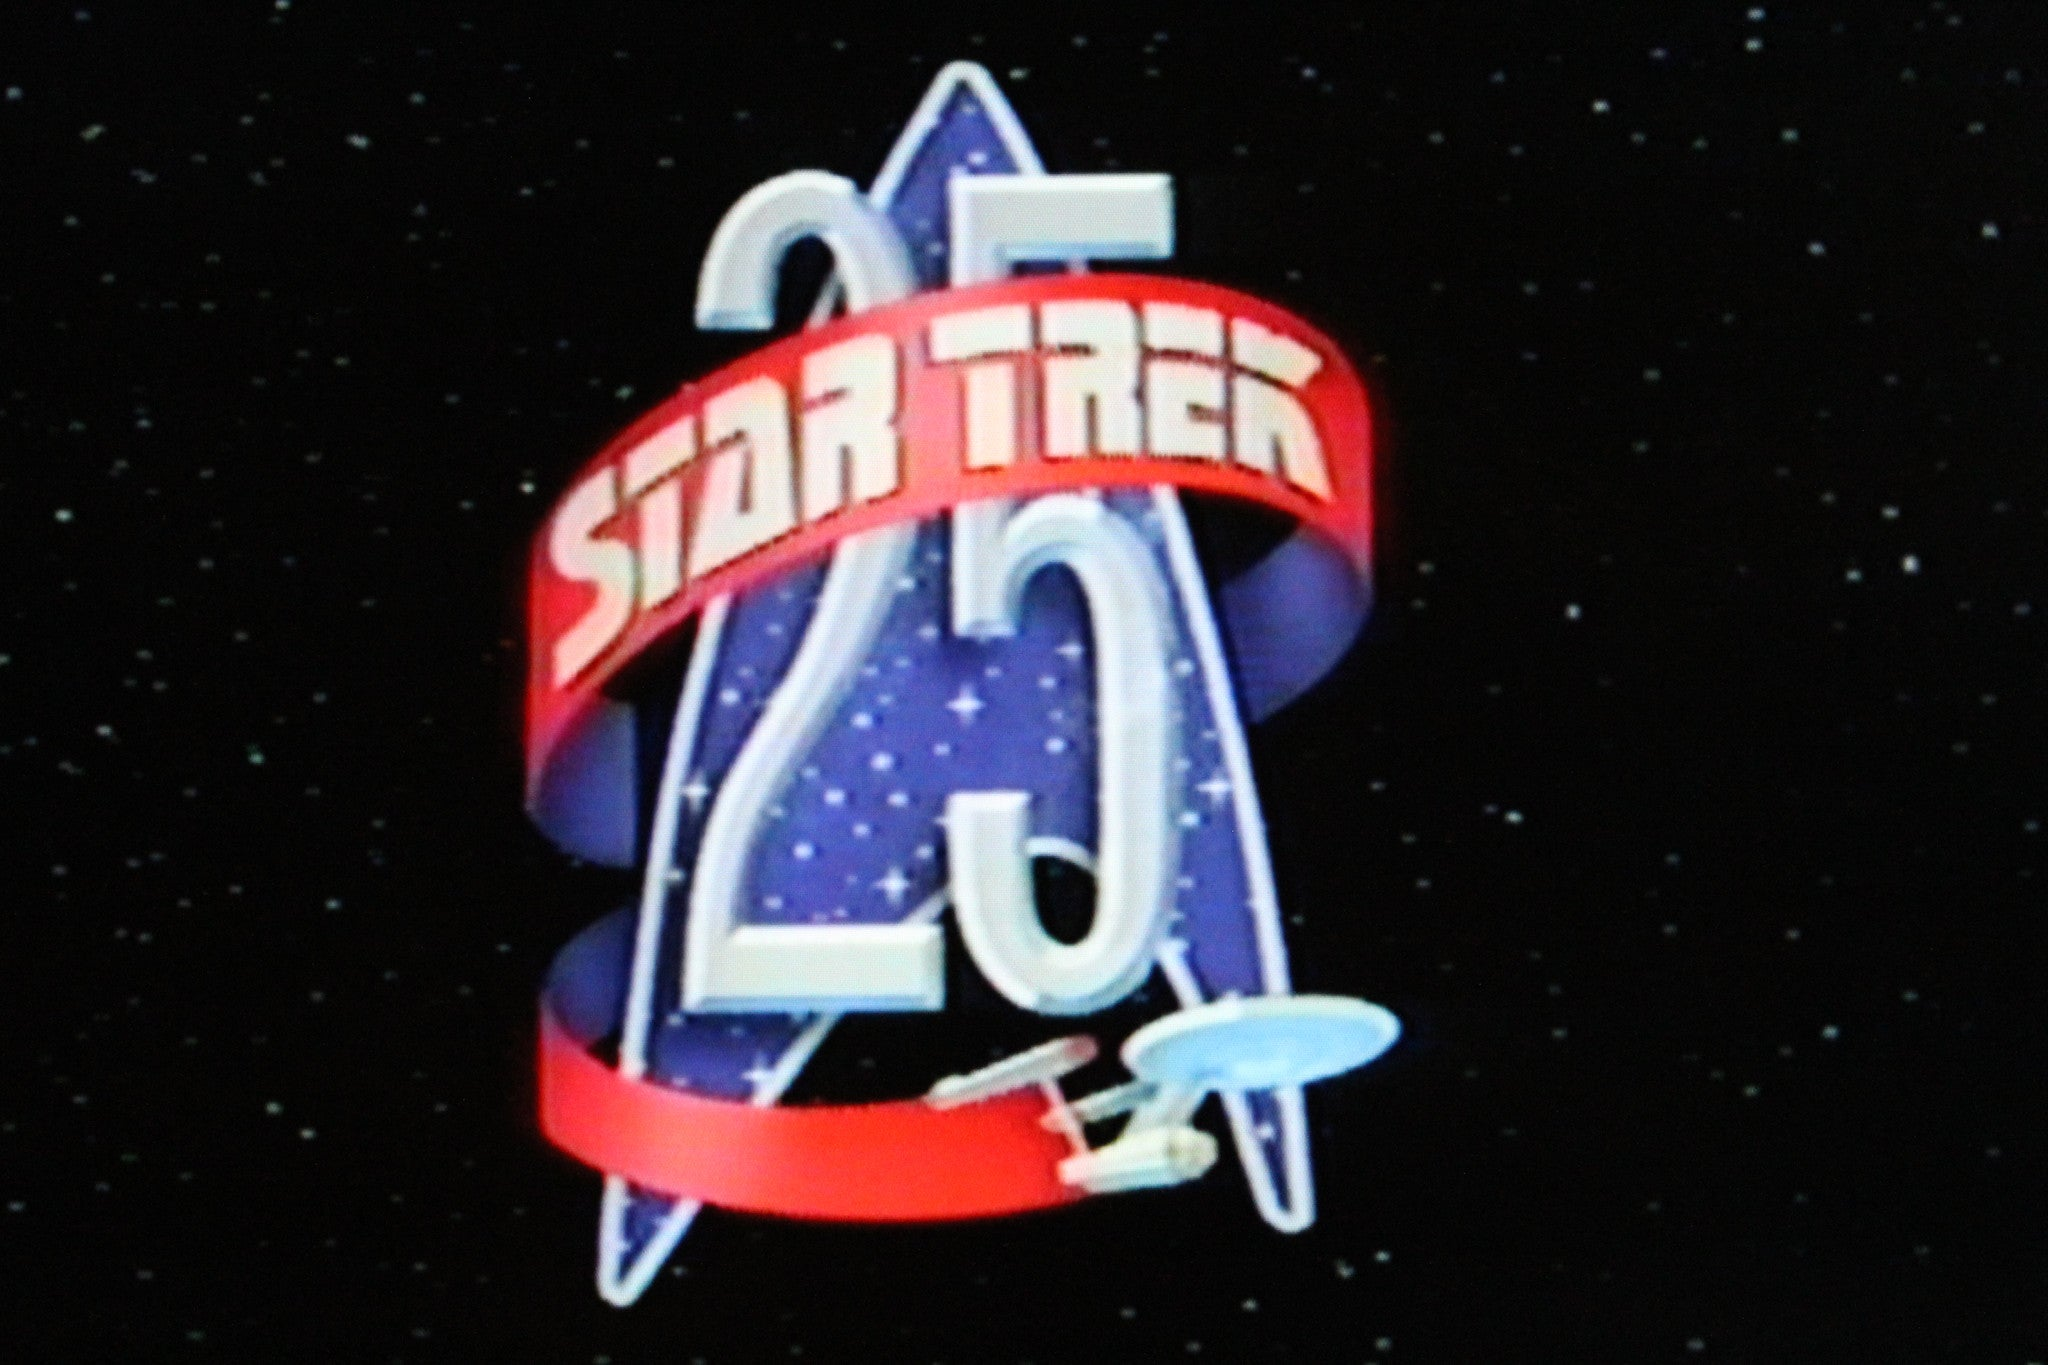 STAR TREK: 25TH ANNIVERSARY SPECIAL (1991) - Rewatch Classic TV